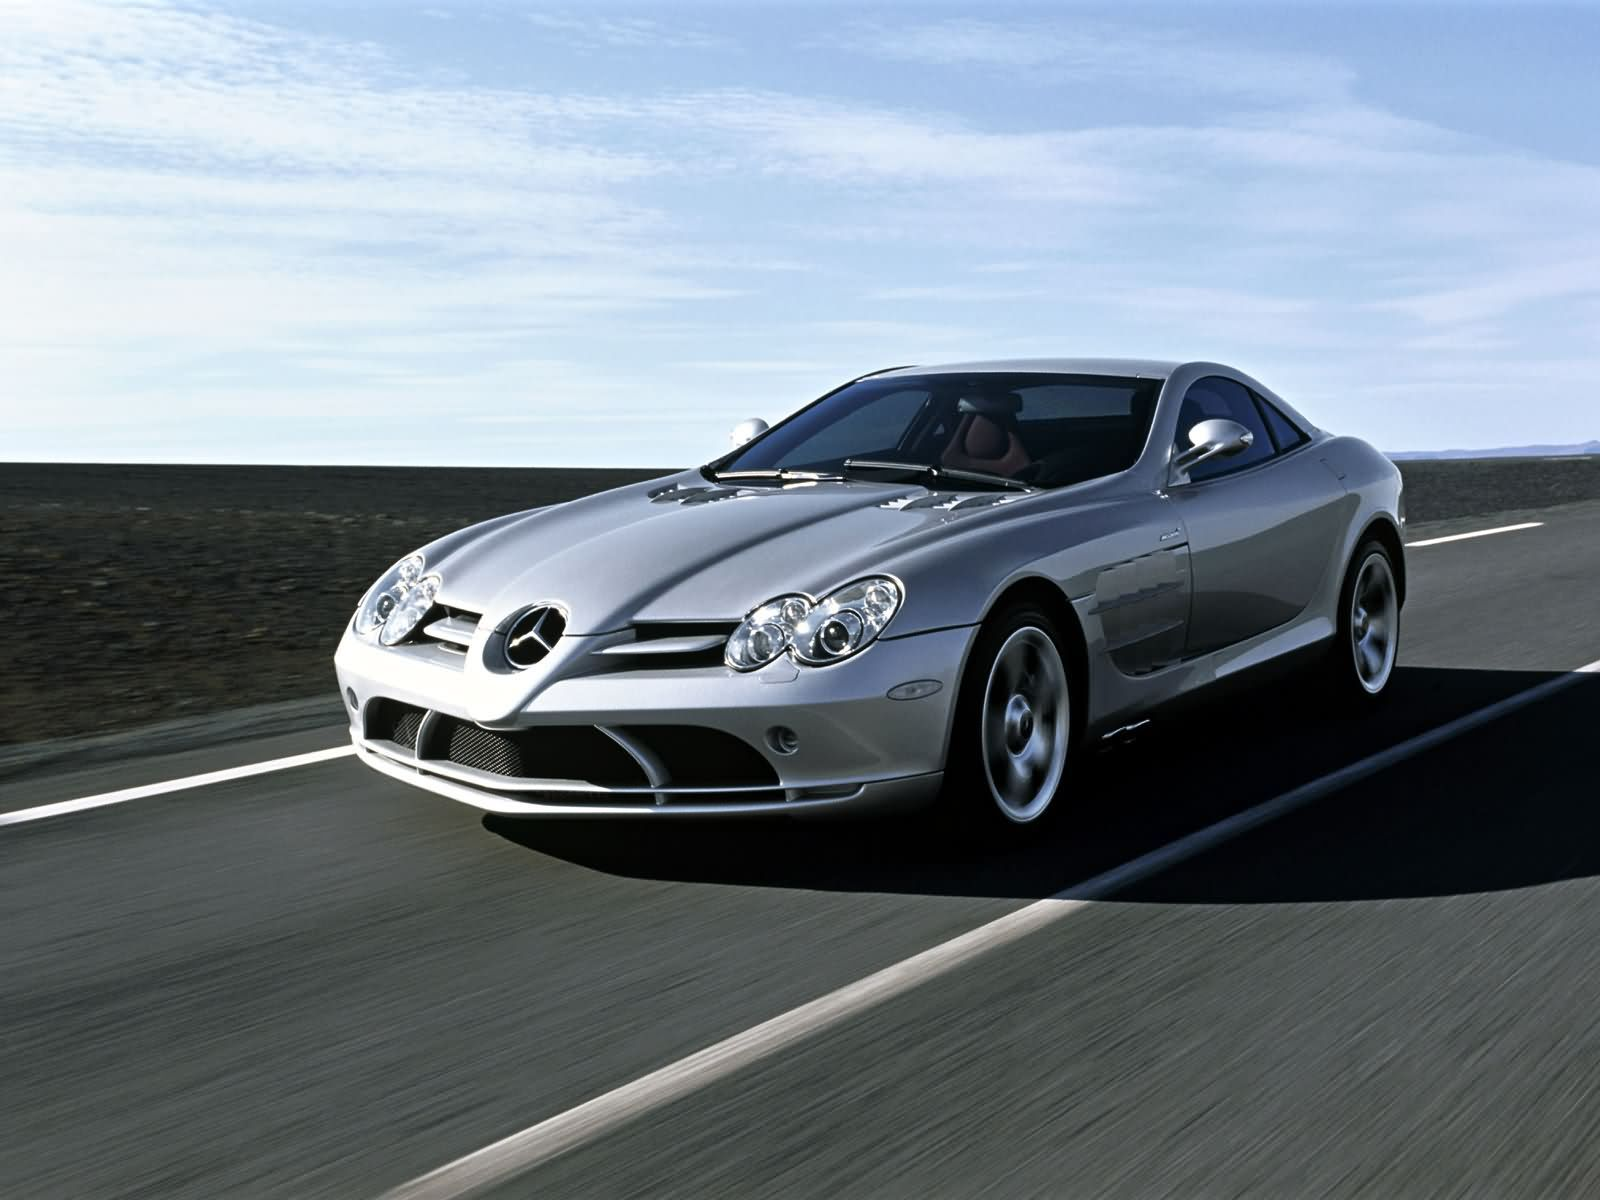 Charmant Pictures Of Mercedes Sports Cars